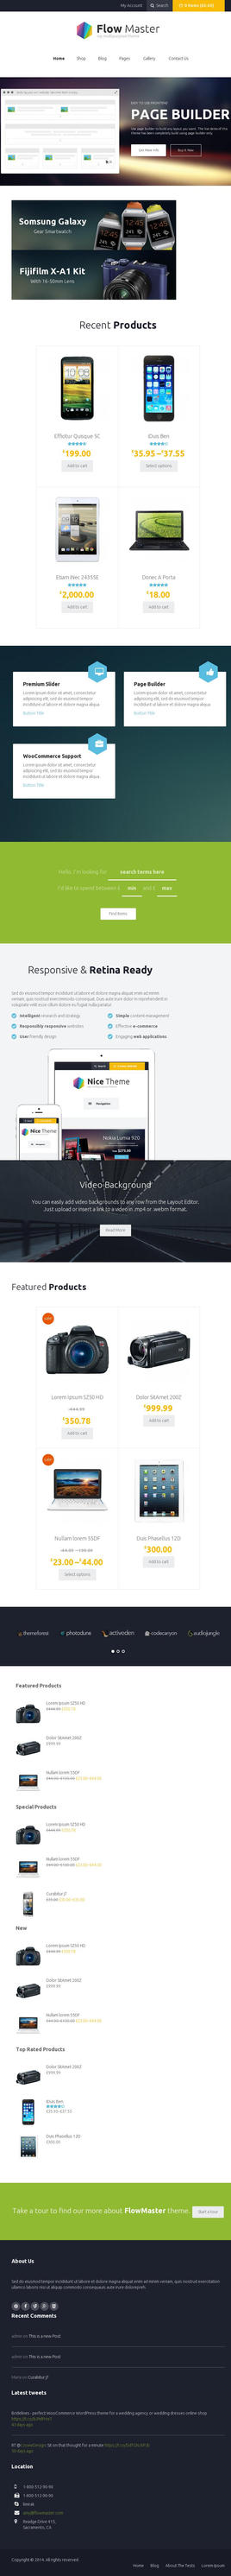 FlowMaster - Electronics Shop WooCommerce Theme by AllResourcess